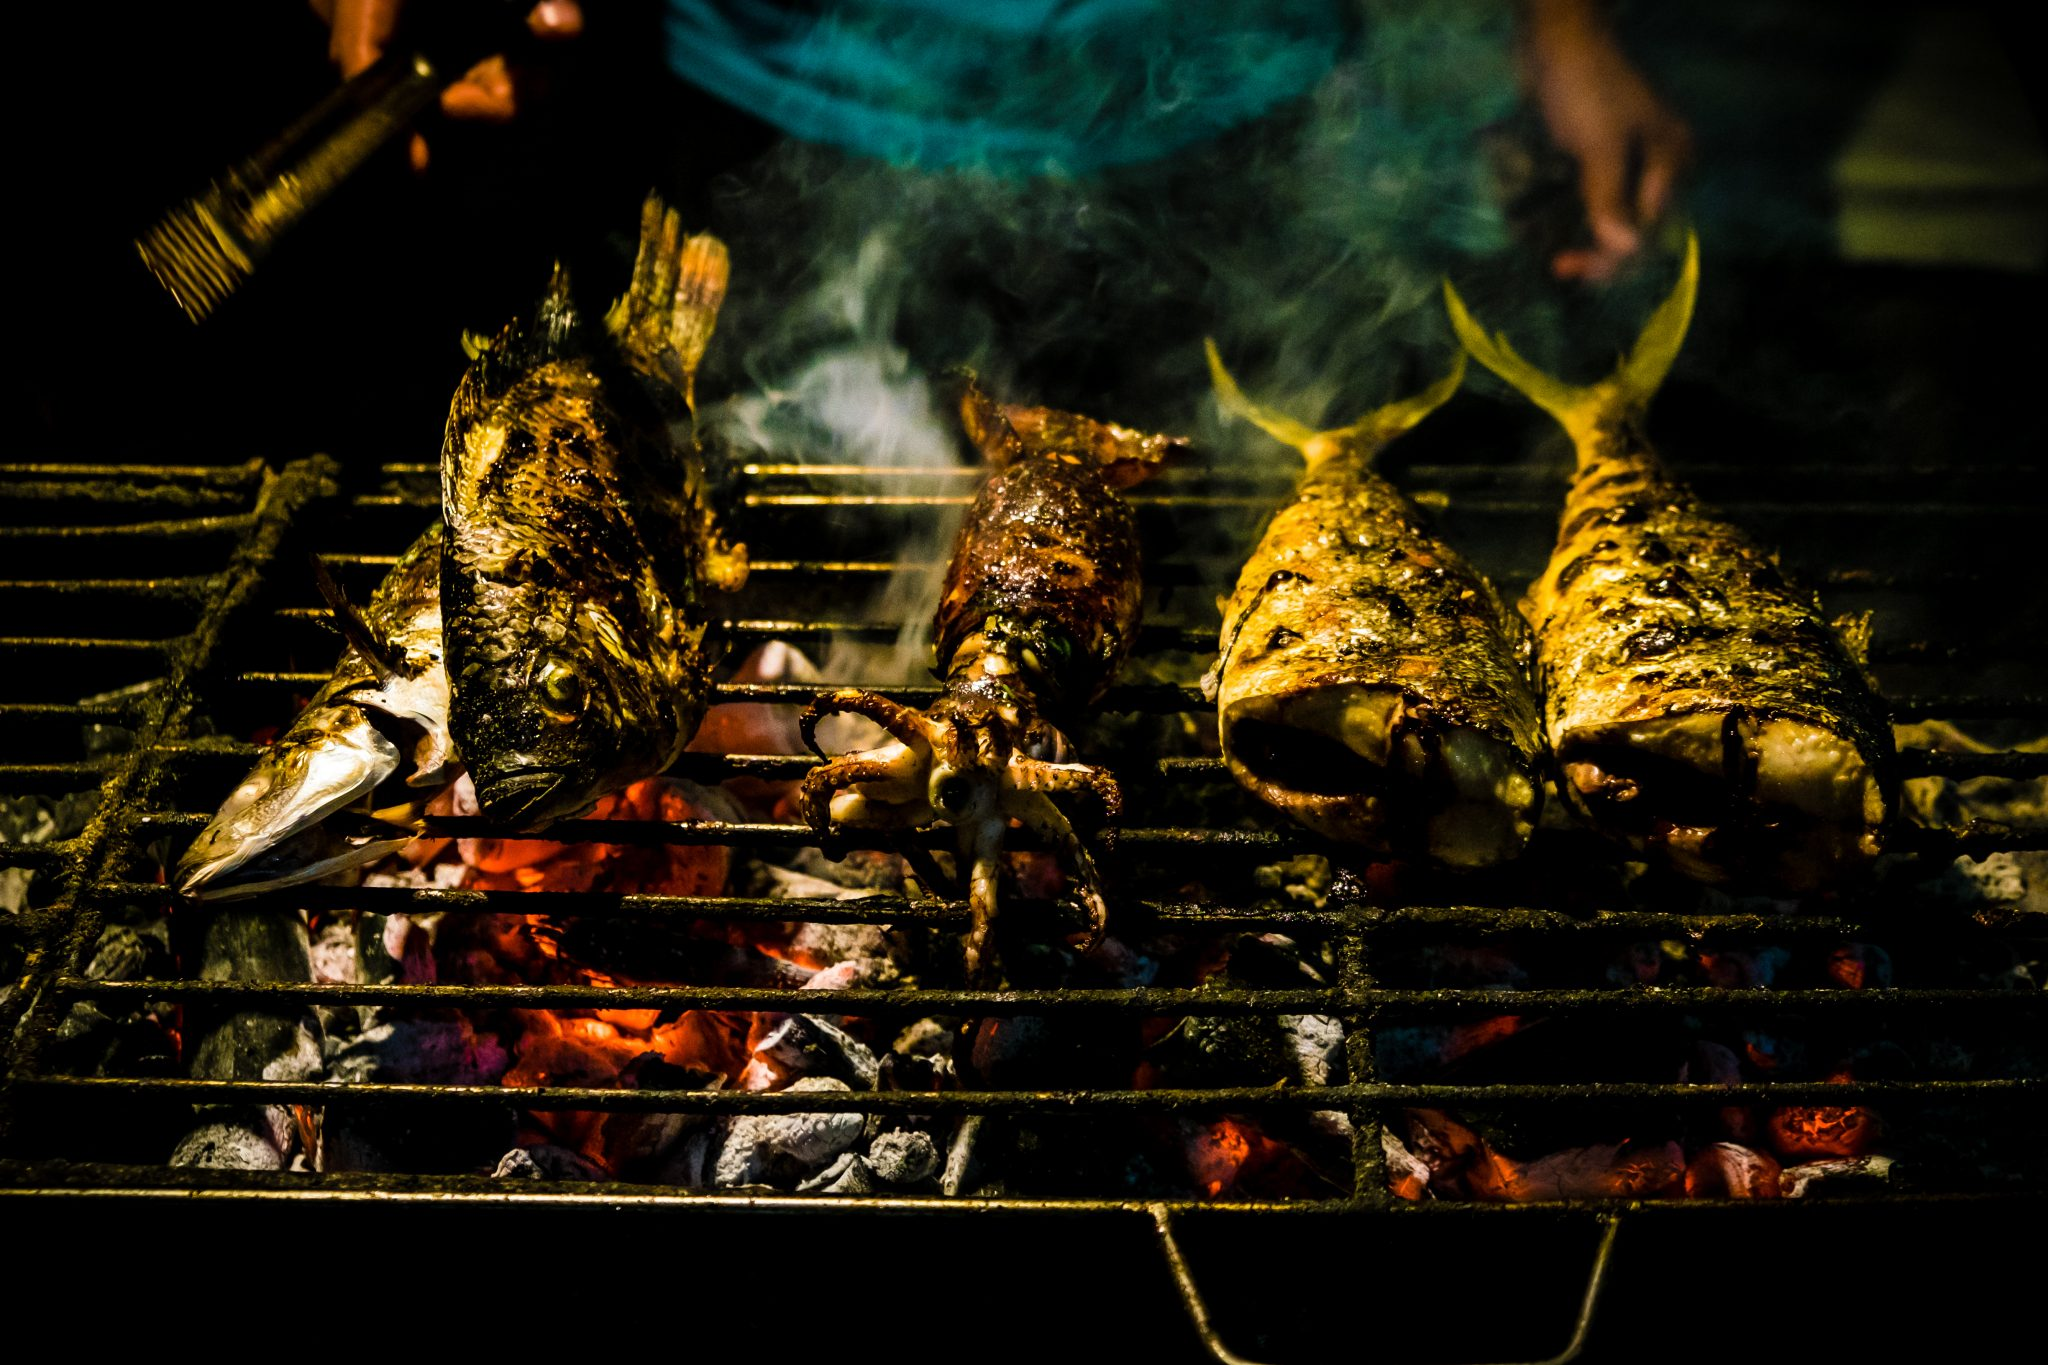 Close-Up Of Seafood On Barbecue Grill At Night